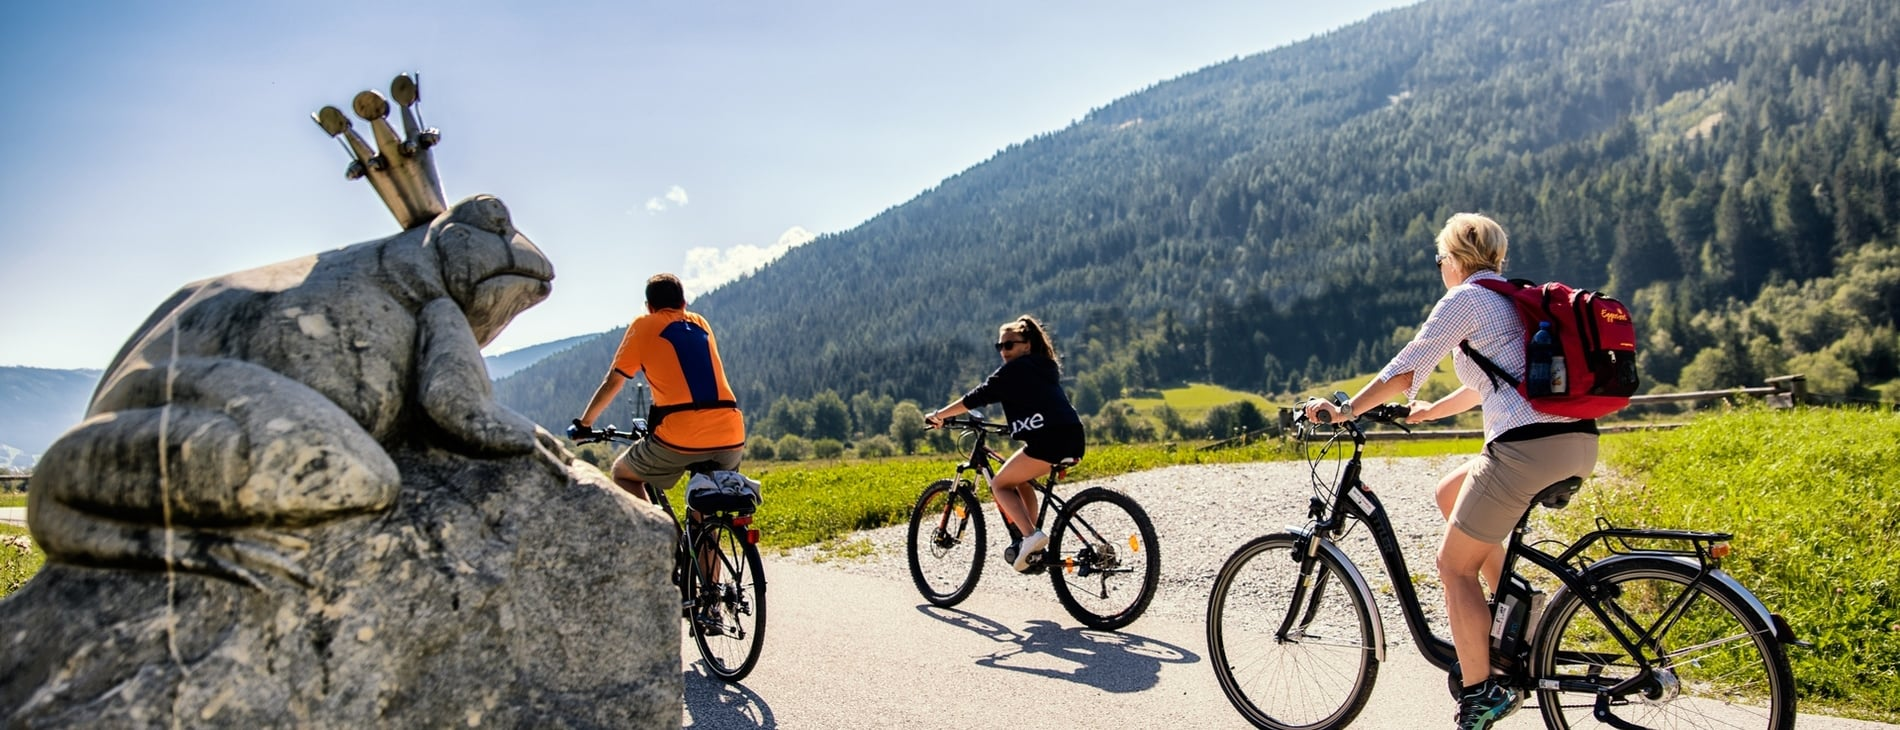 Cycling Holiday in Austria